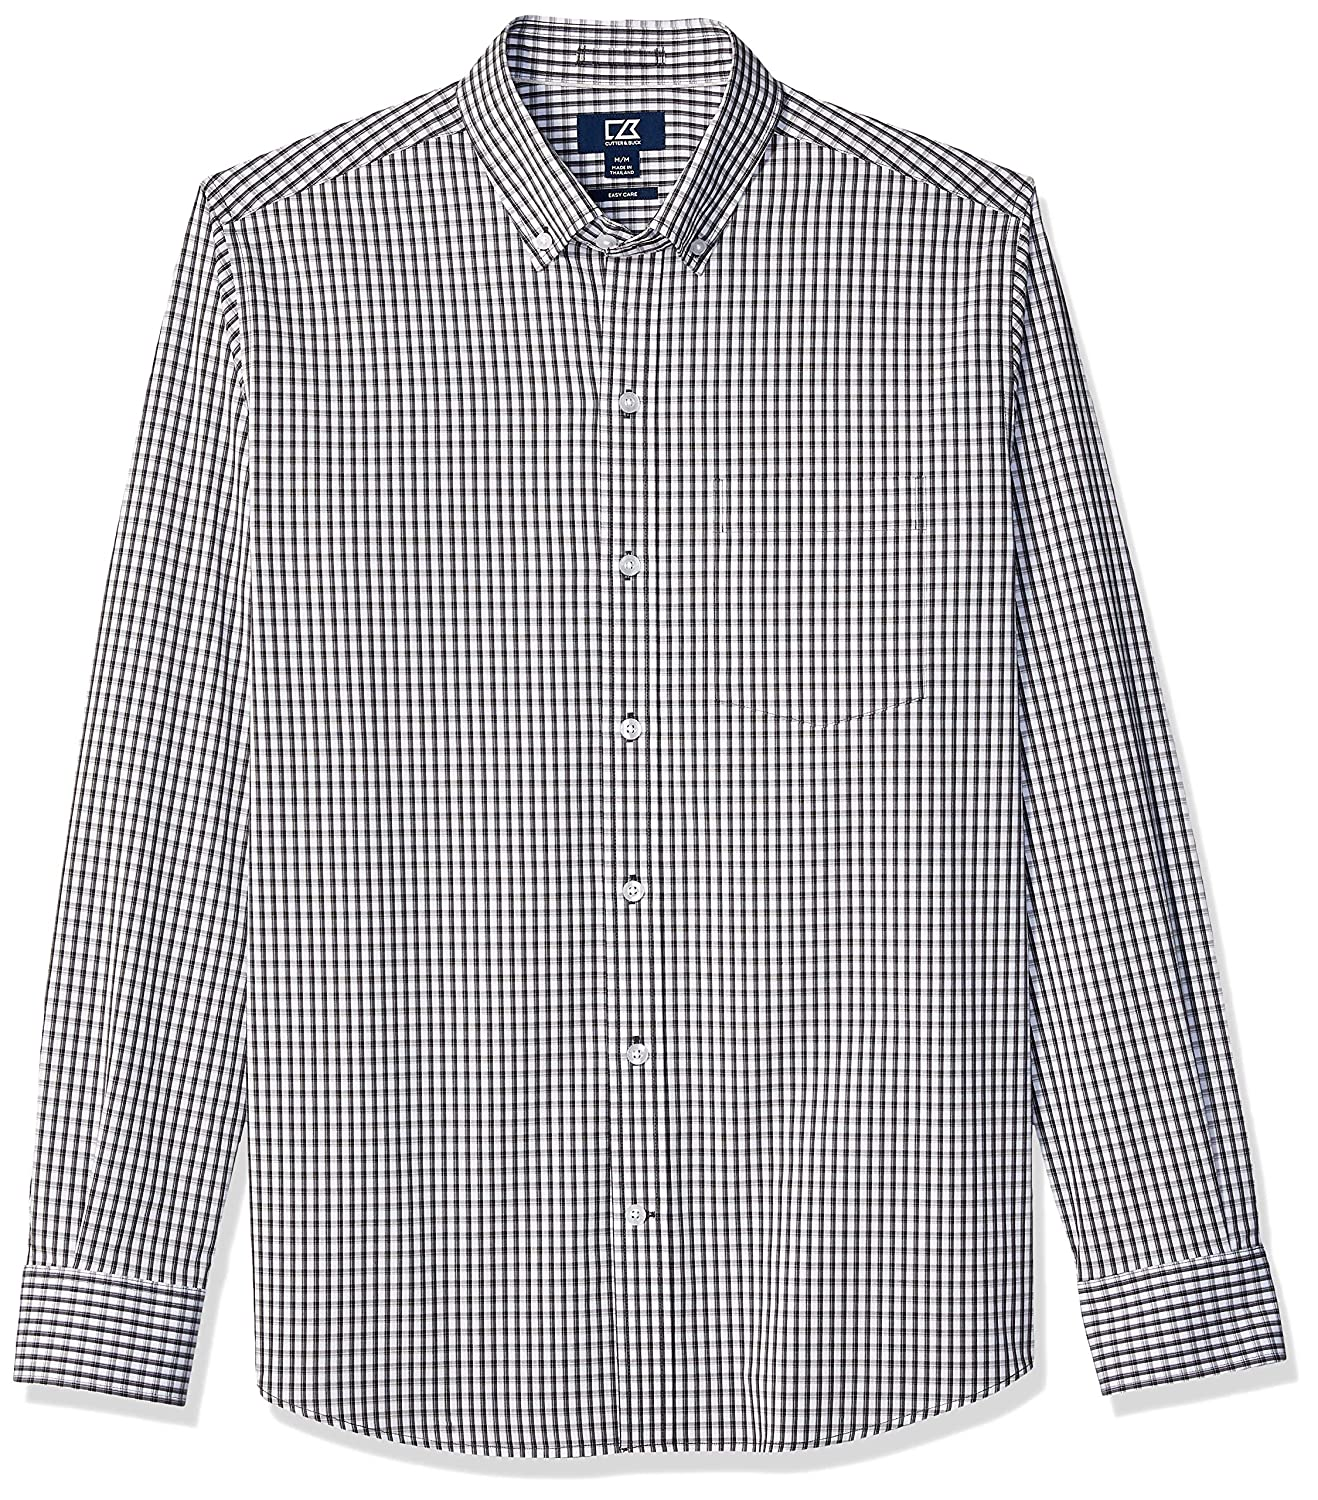 Charcoal Gingham 4X Grande Cutter & Buck Homme BCW00143 Manches Longues Chemise habillée